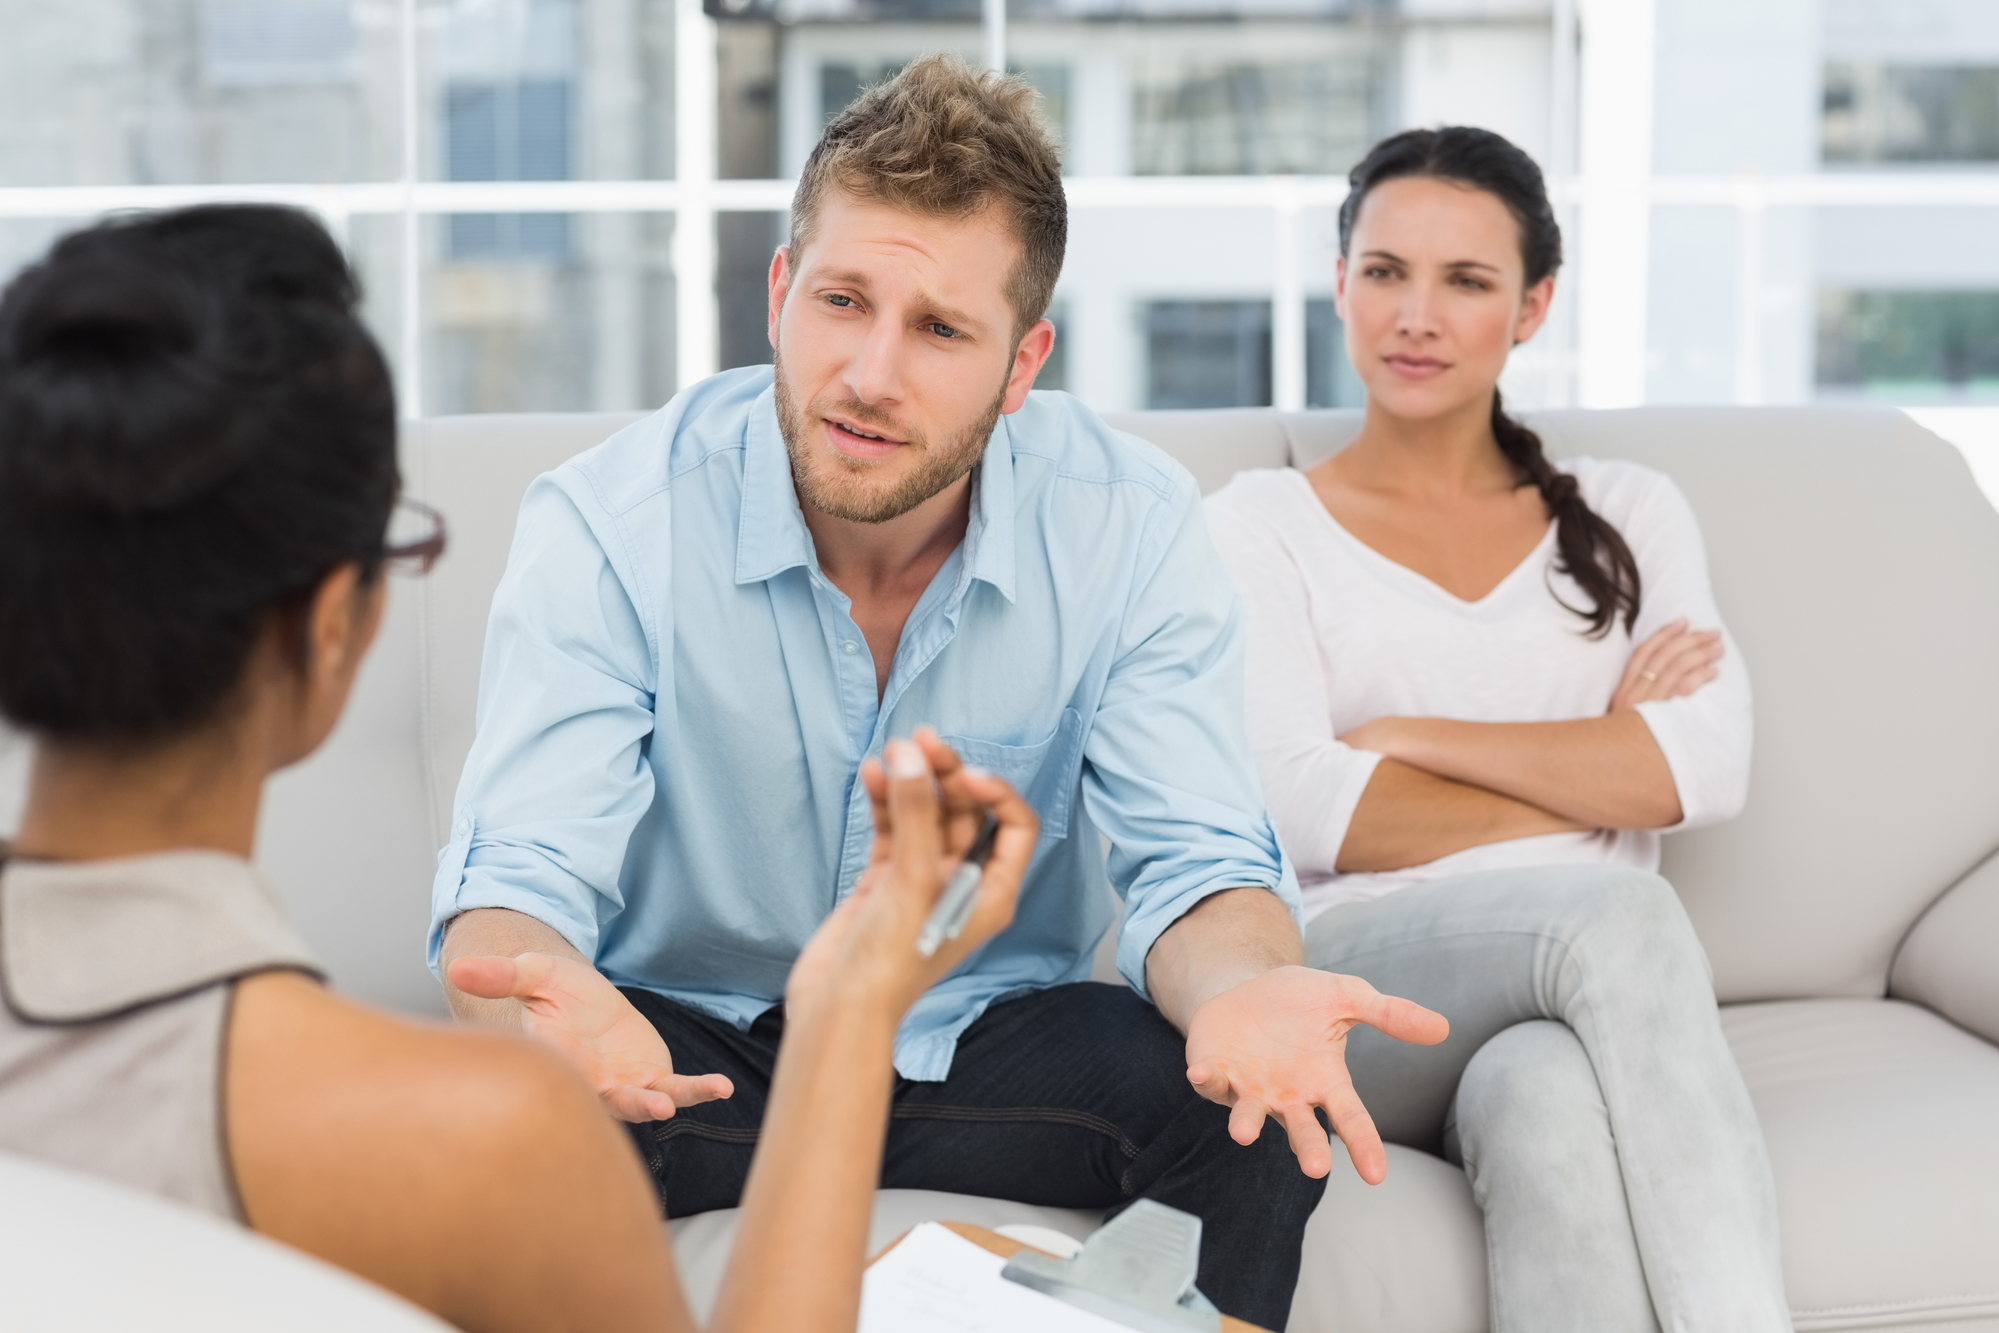 marriage counselor frisco tx | cmfc 214-250-7808, Human Body